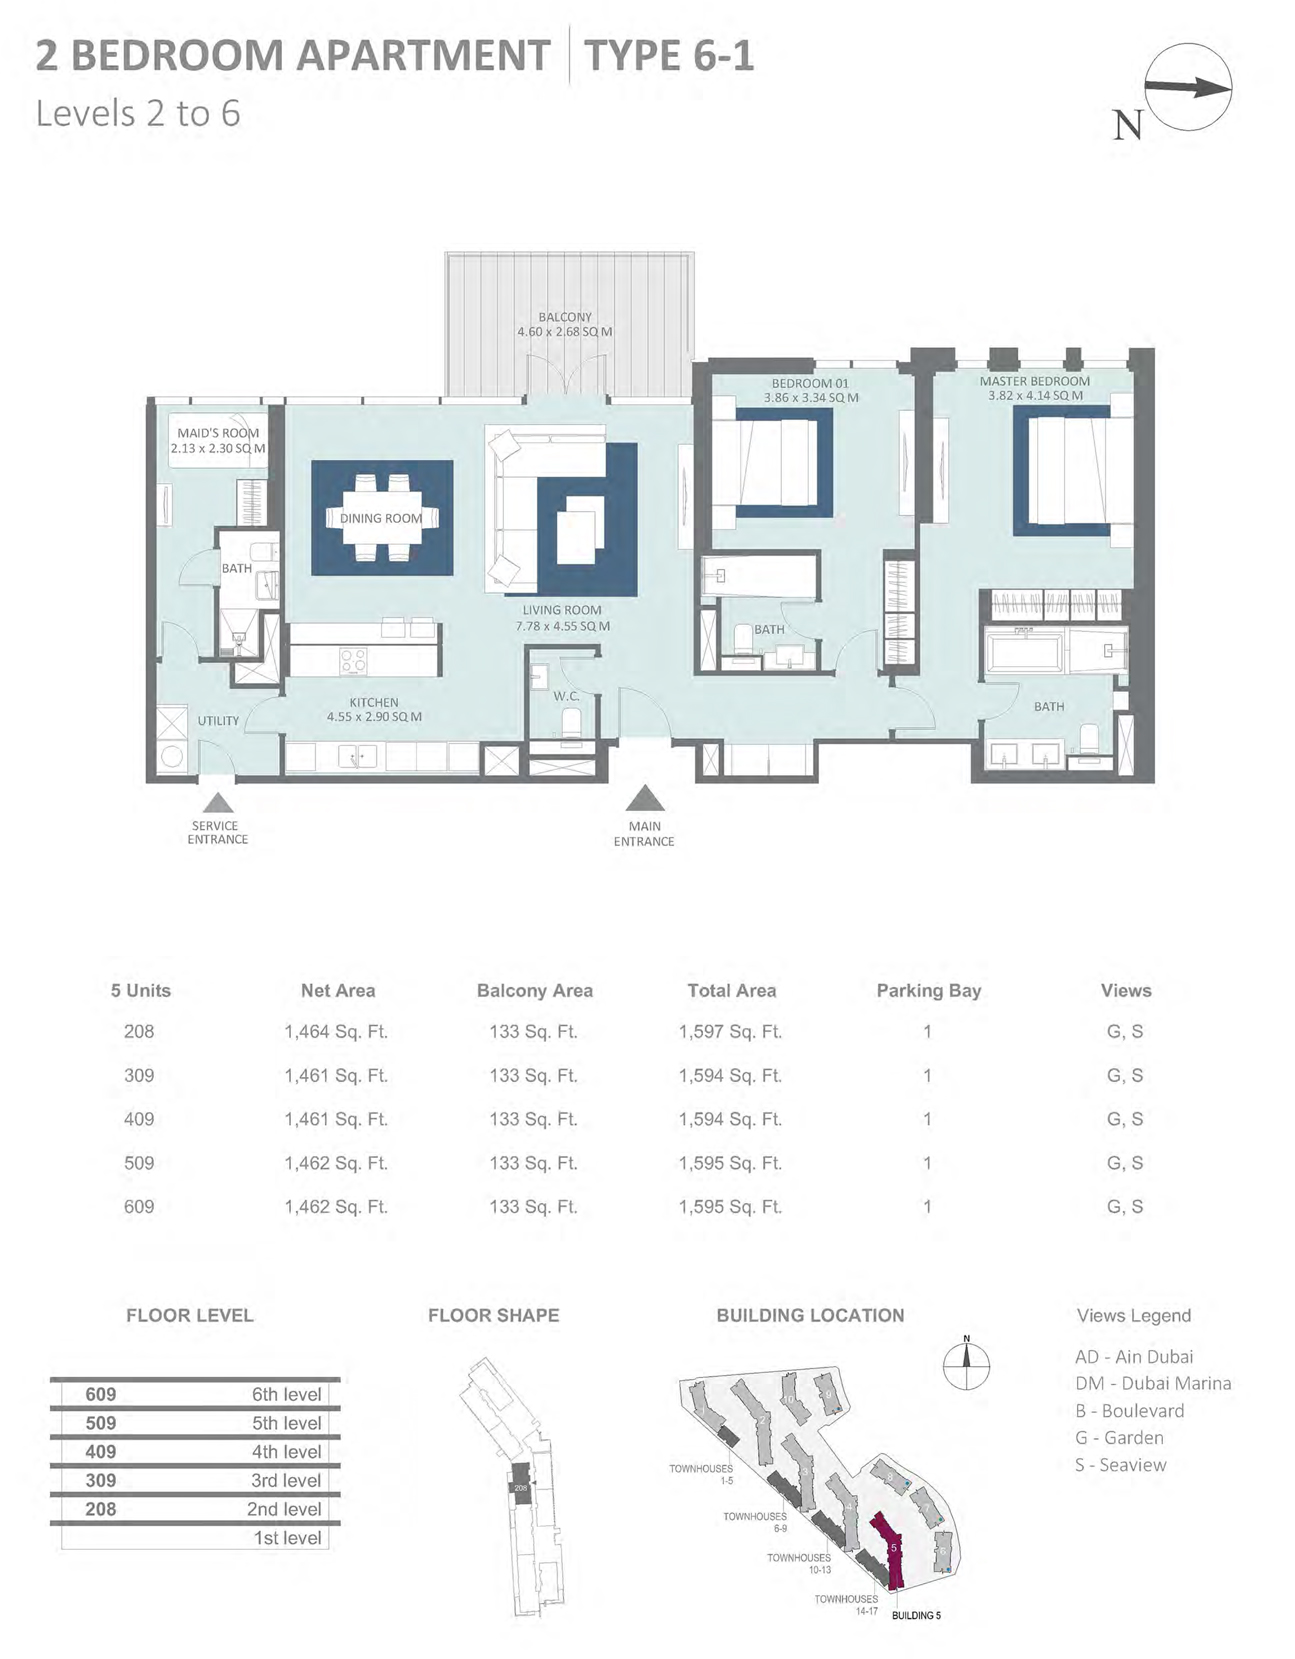 Building 5 - 2 Bedroom Type 6-1 Level 2-6 , Size 1597    sq. ft.